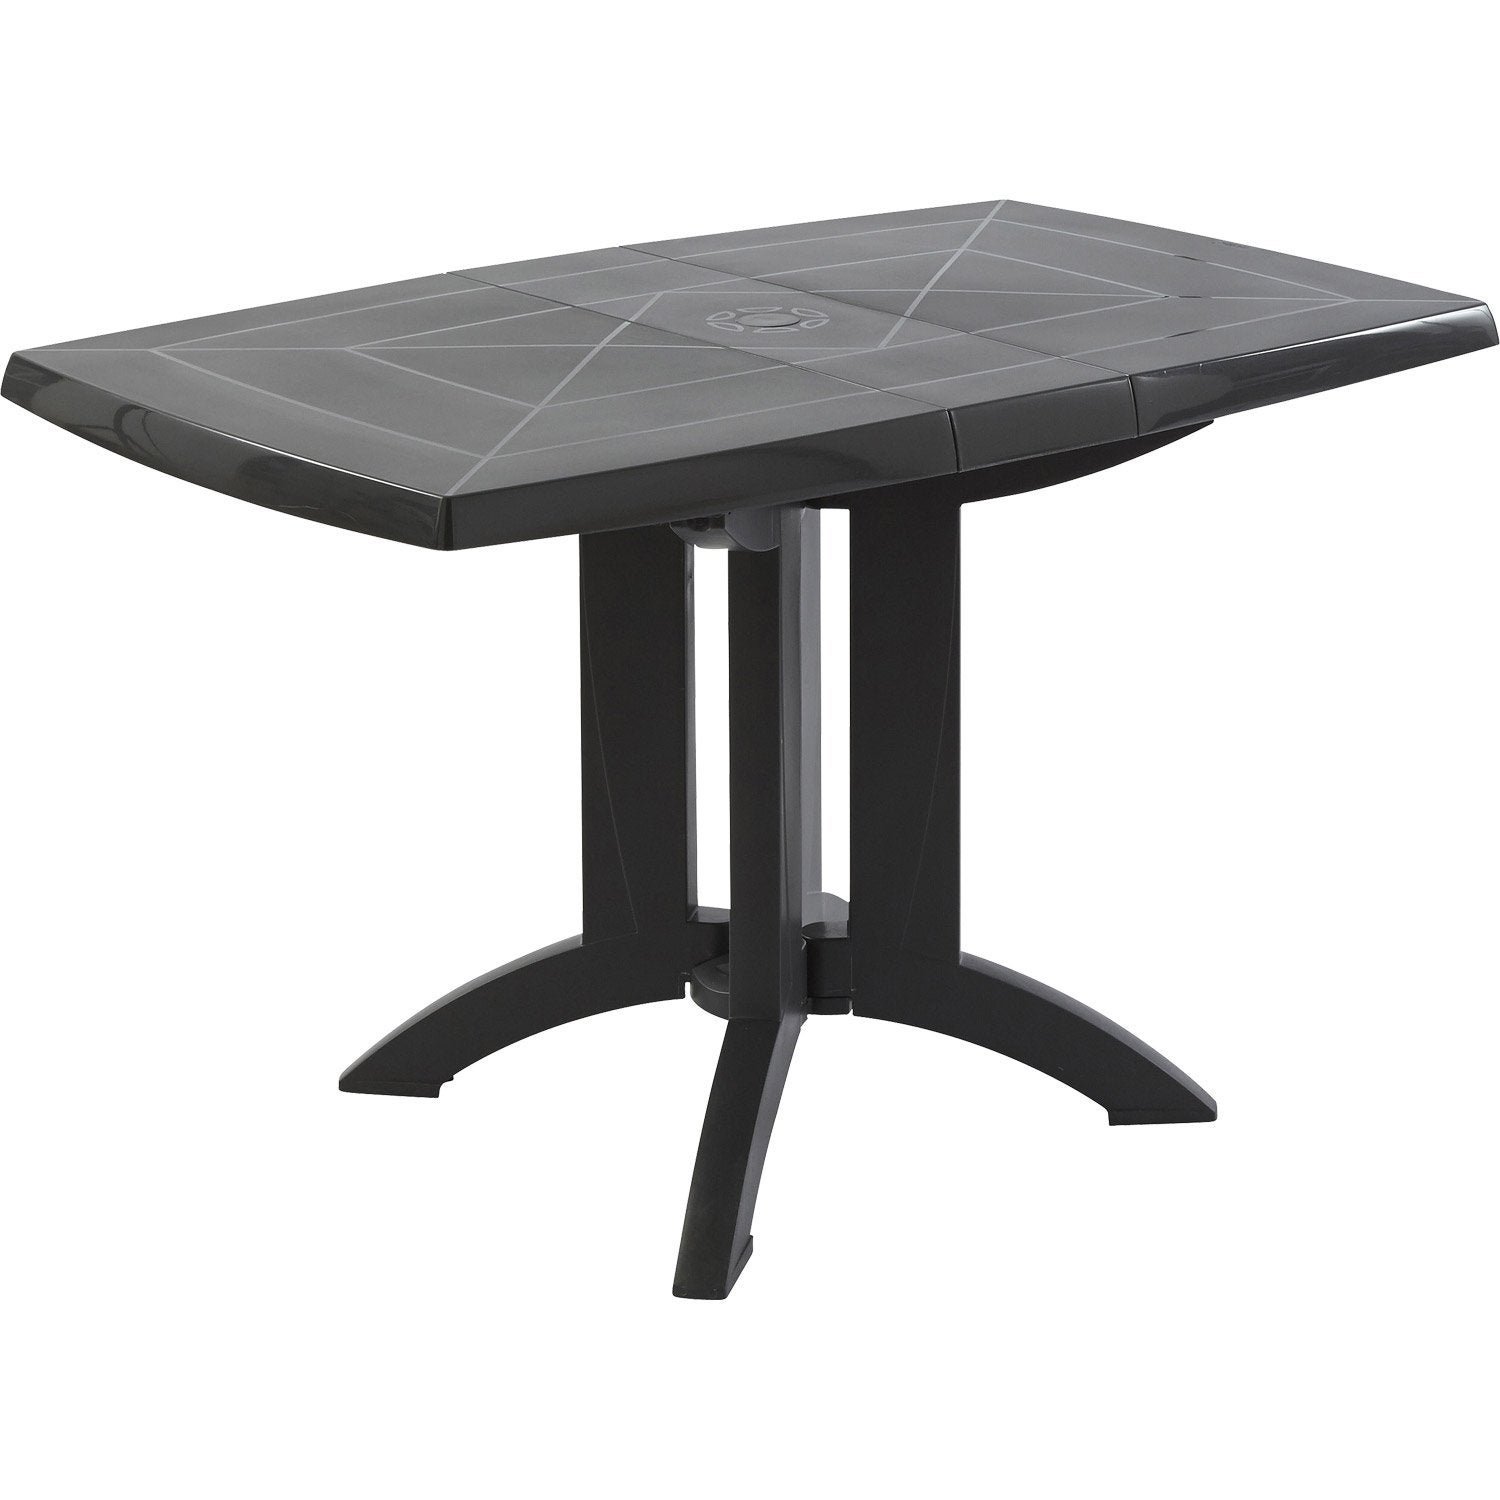 Leroy Merlin Table Jardin Of Table De Jardin Grosfillex V Ga Rectangulaire Anthracite 4